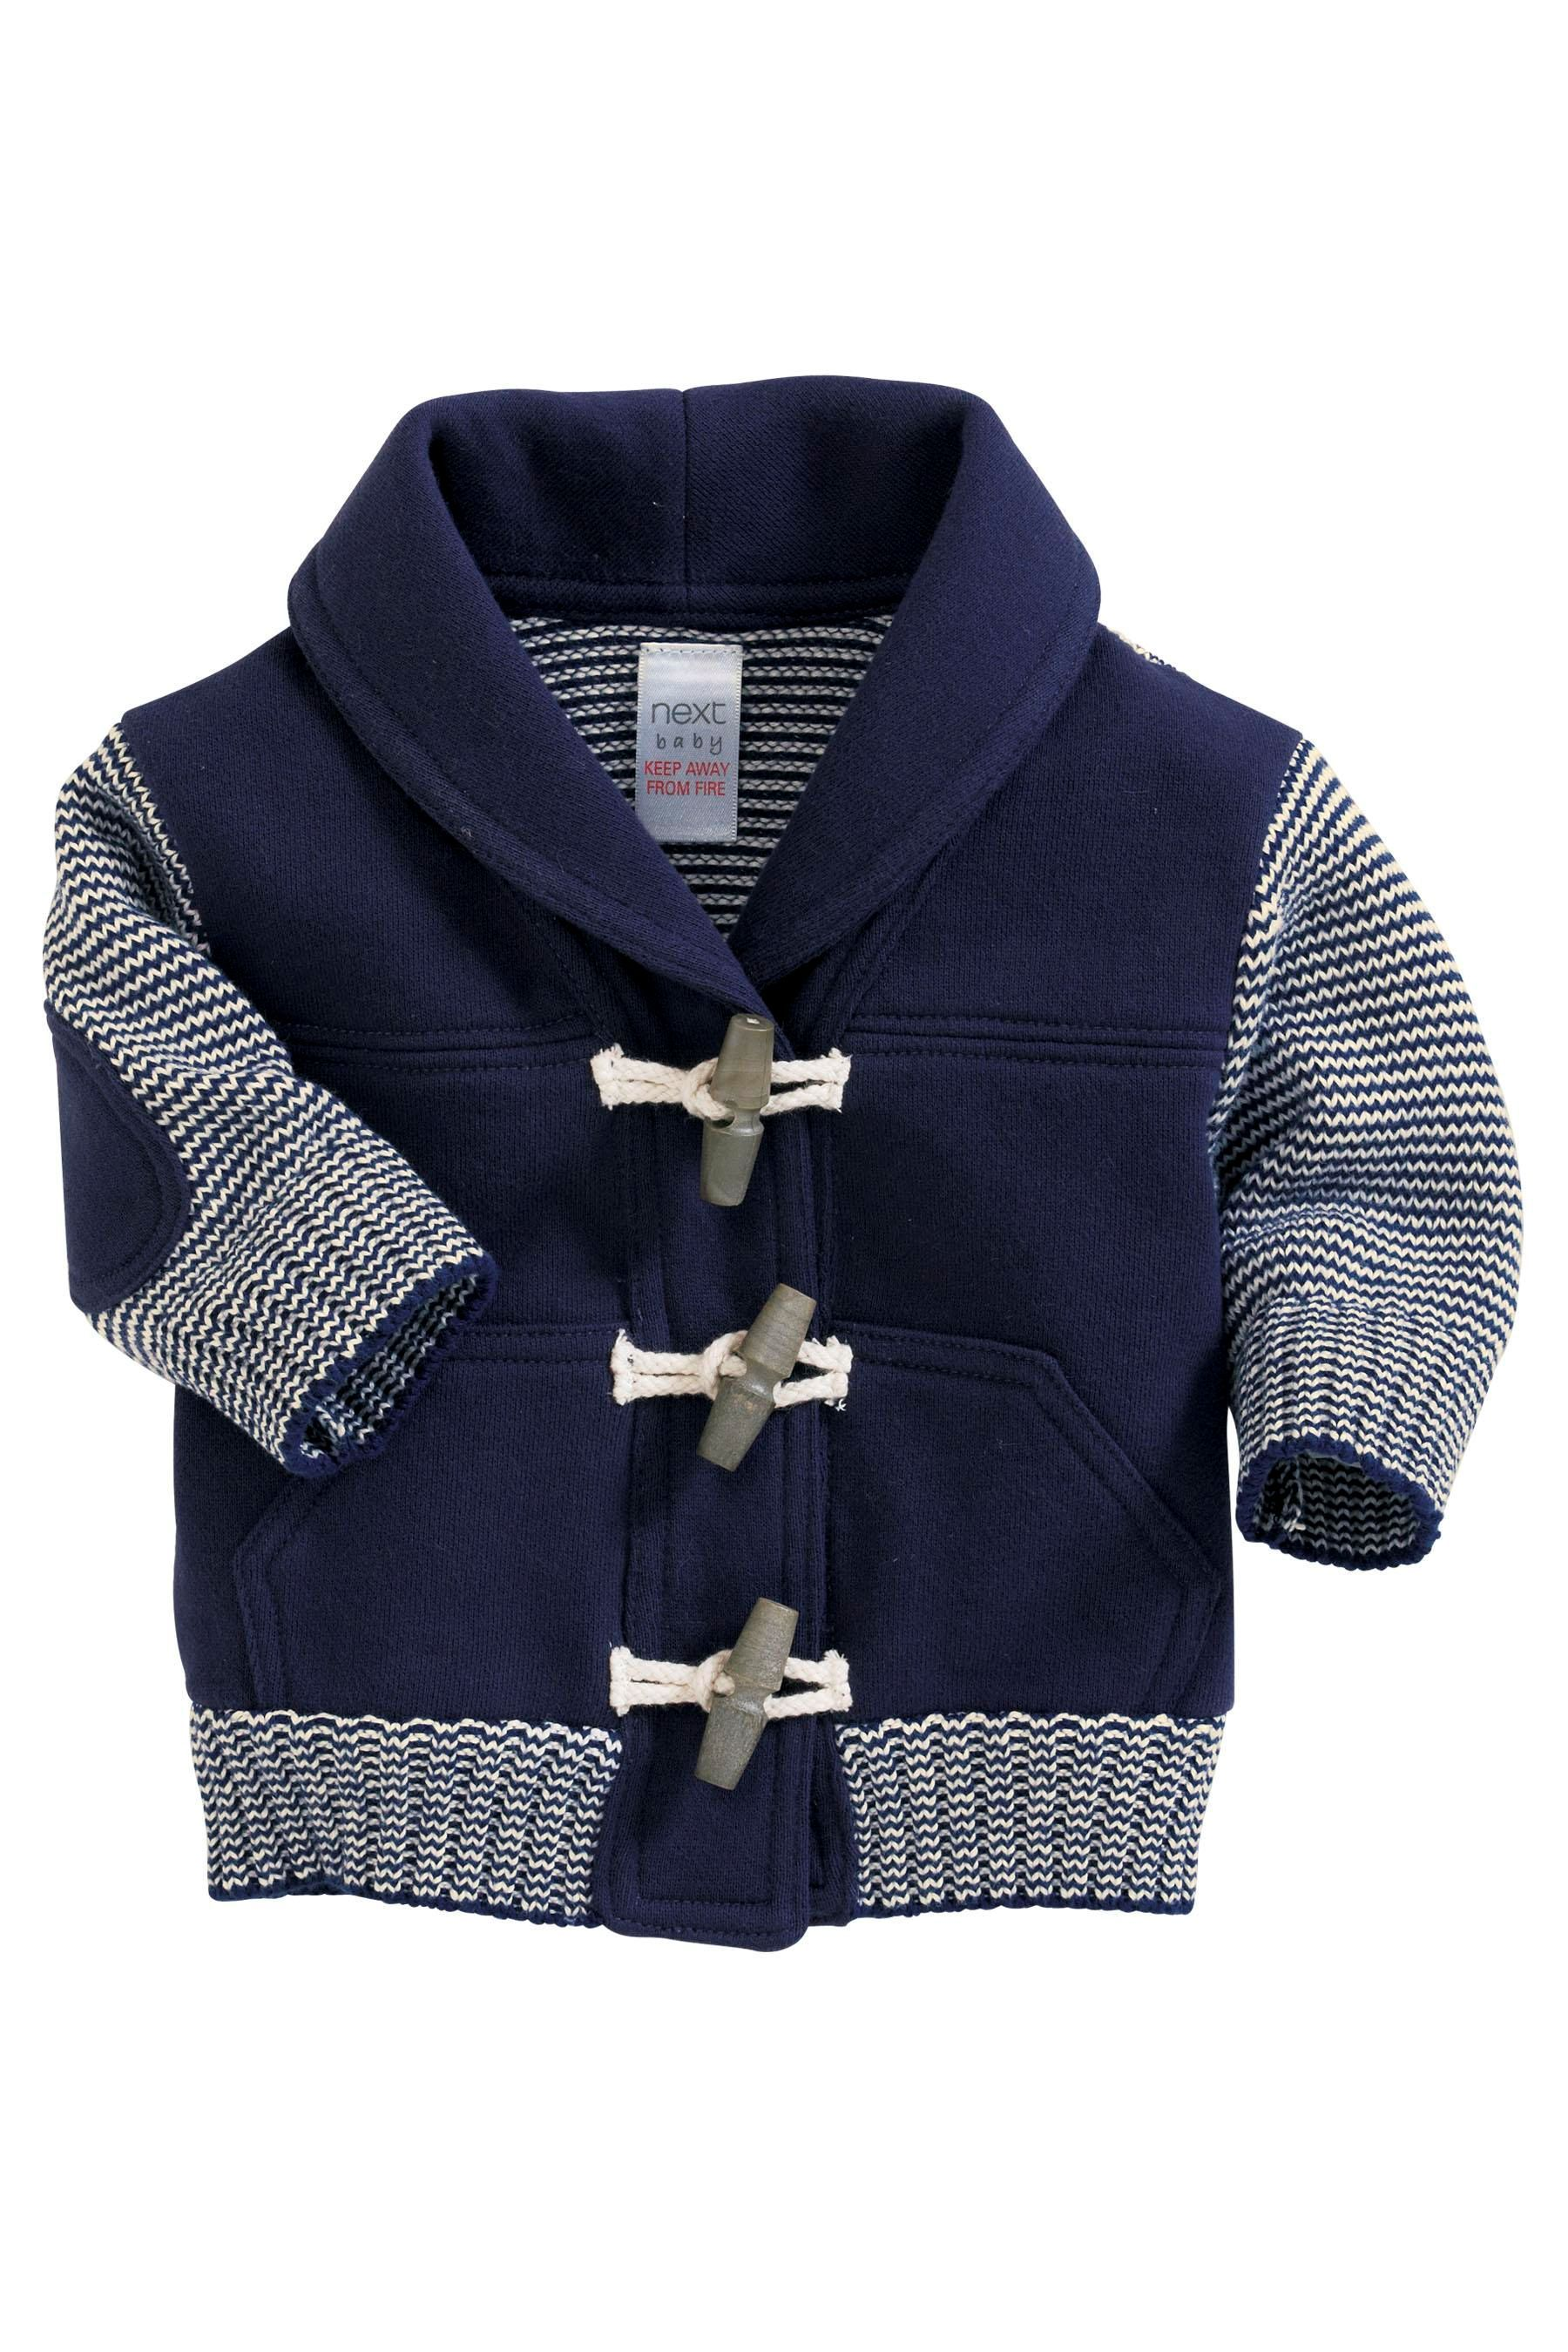 980bed89d77 sweater style. sweater style Newborn Boy Outfits ...